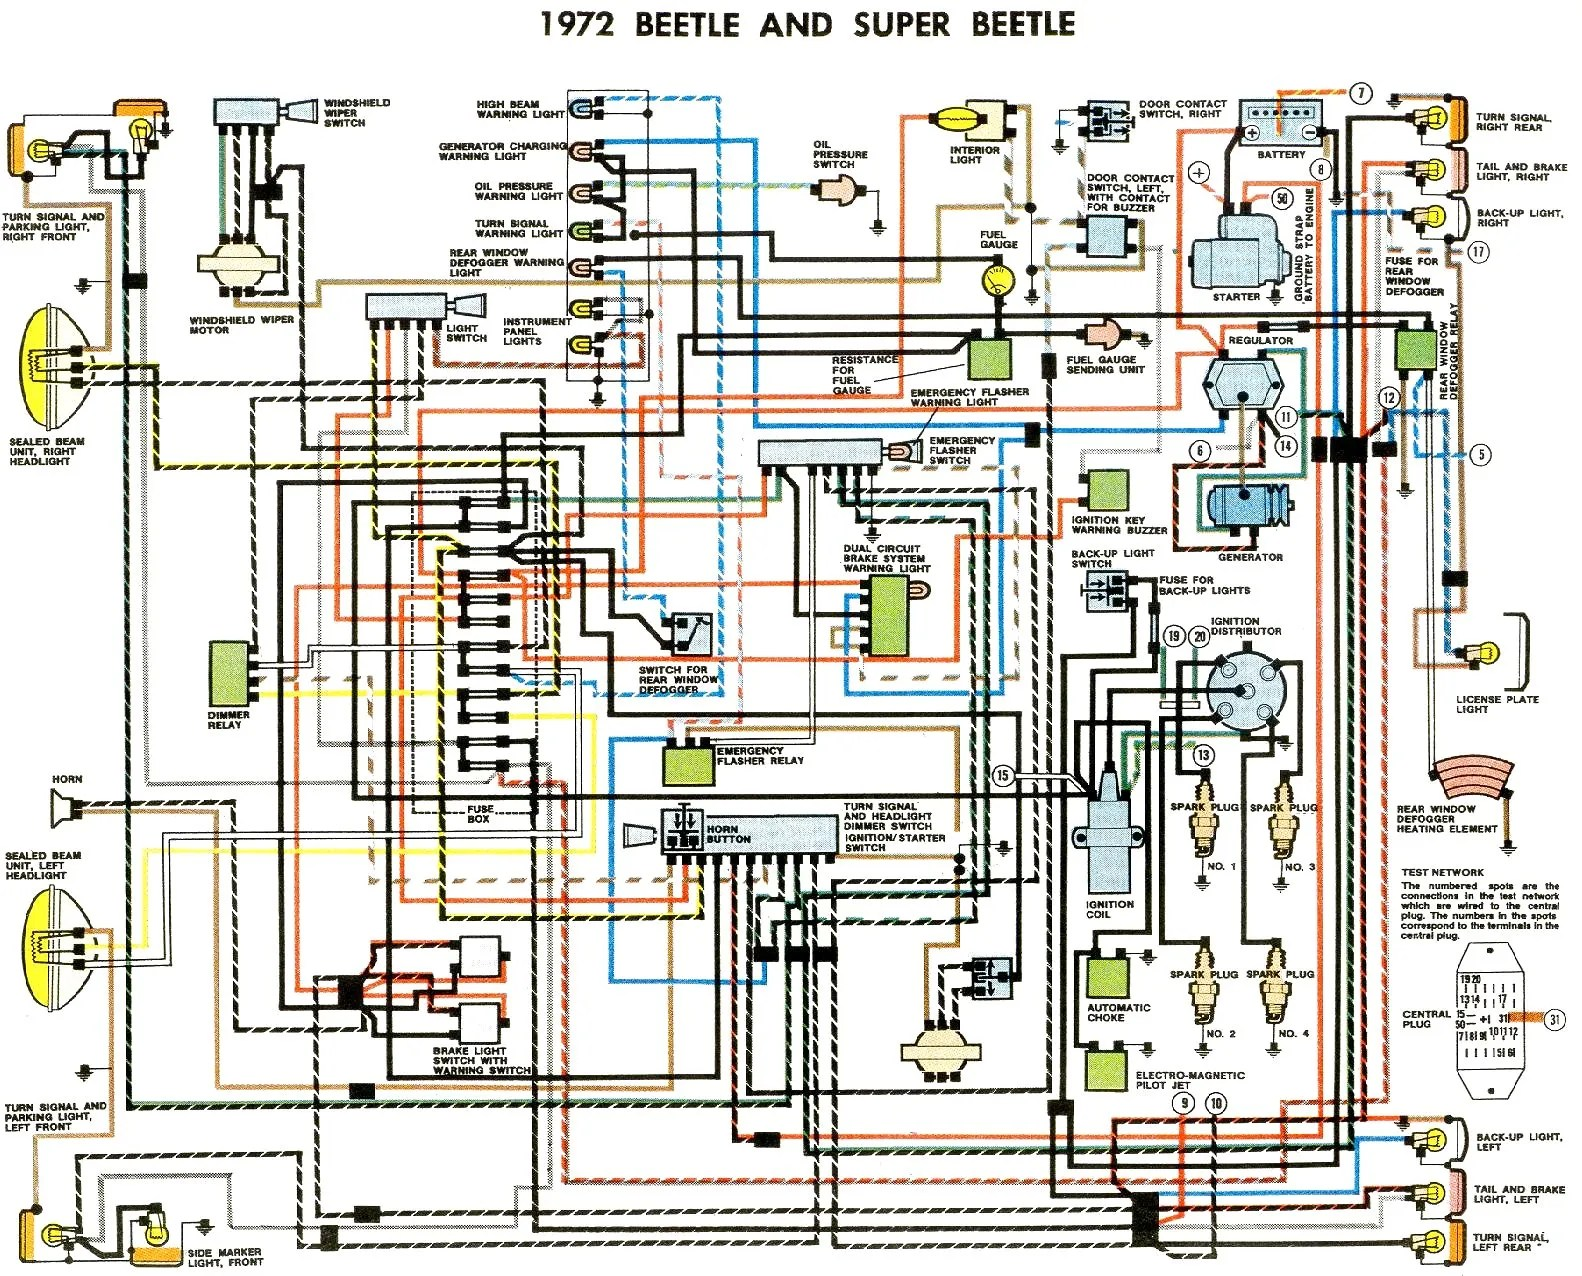 hight resolution of 72 vw engine diagram blog wiring diagram 72 beetle engine diagram